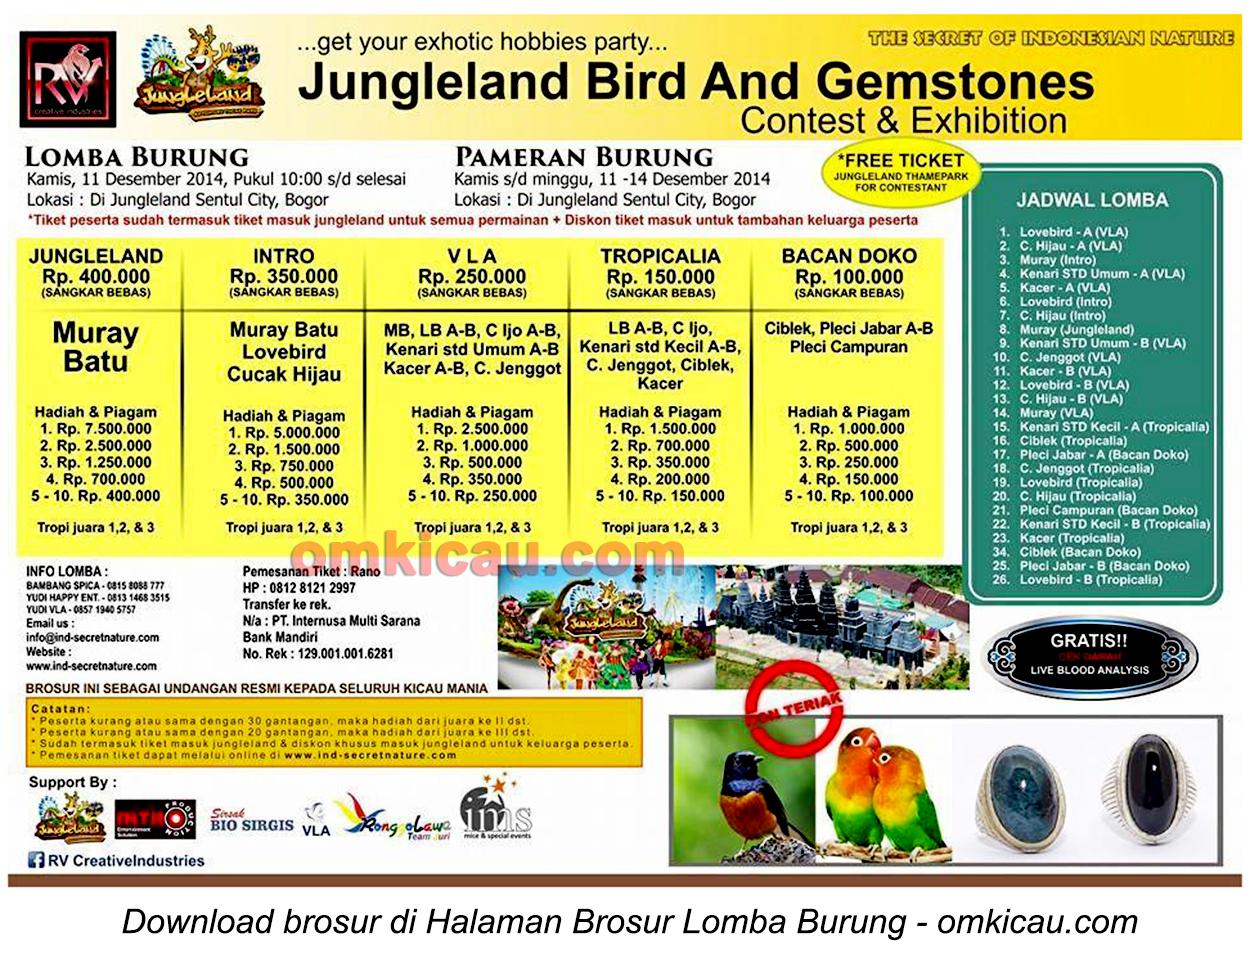 Brosur Lomba Jungleland Bird and Gemstones, Bogor, 11 Desember 2014